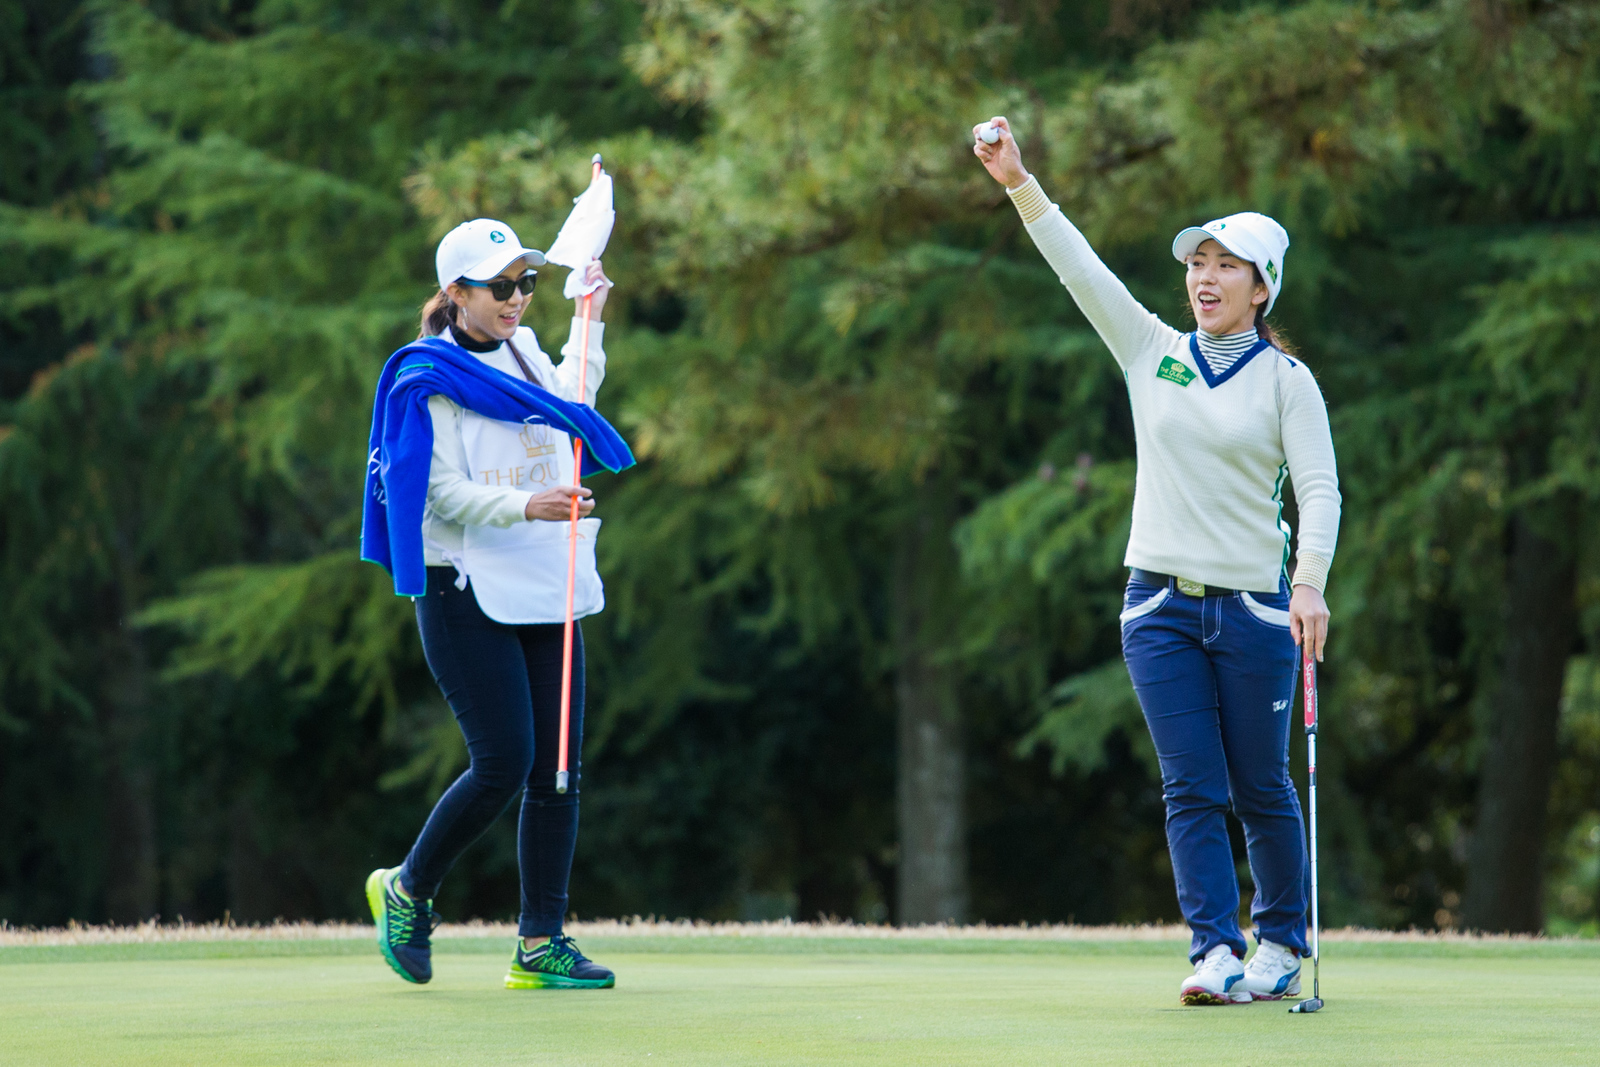 Ritsuko Ryu of Japan celebrates her win on the 16th hole during the Friday four-balls